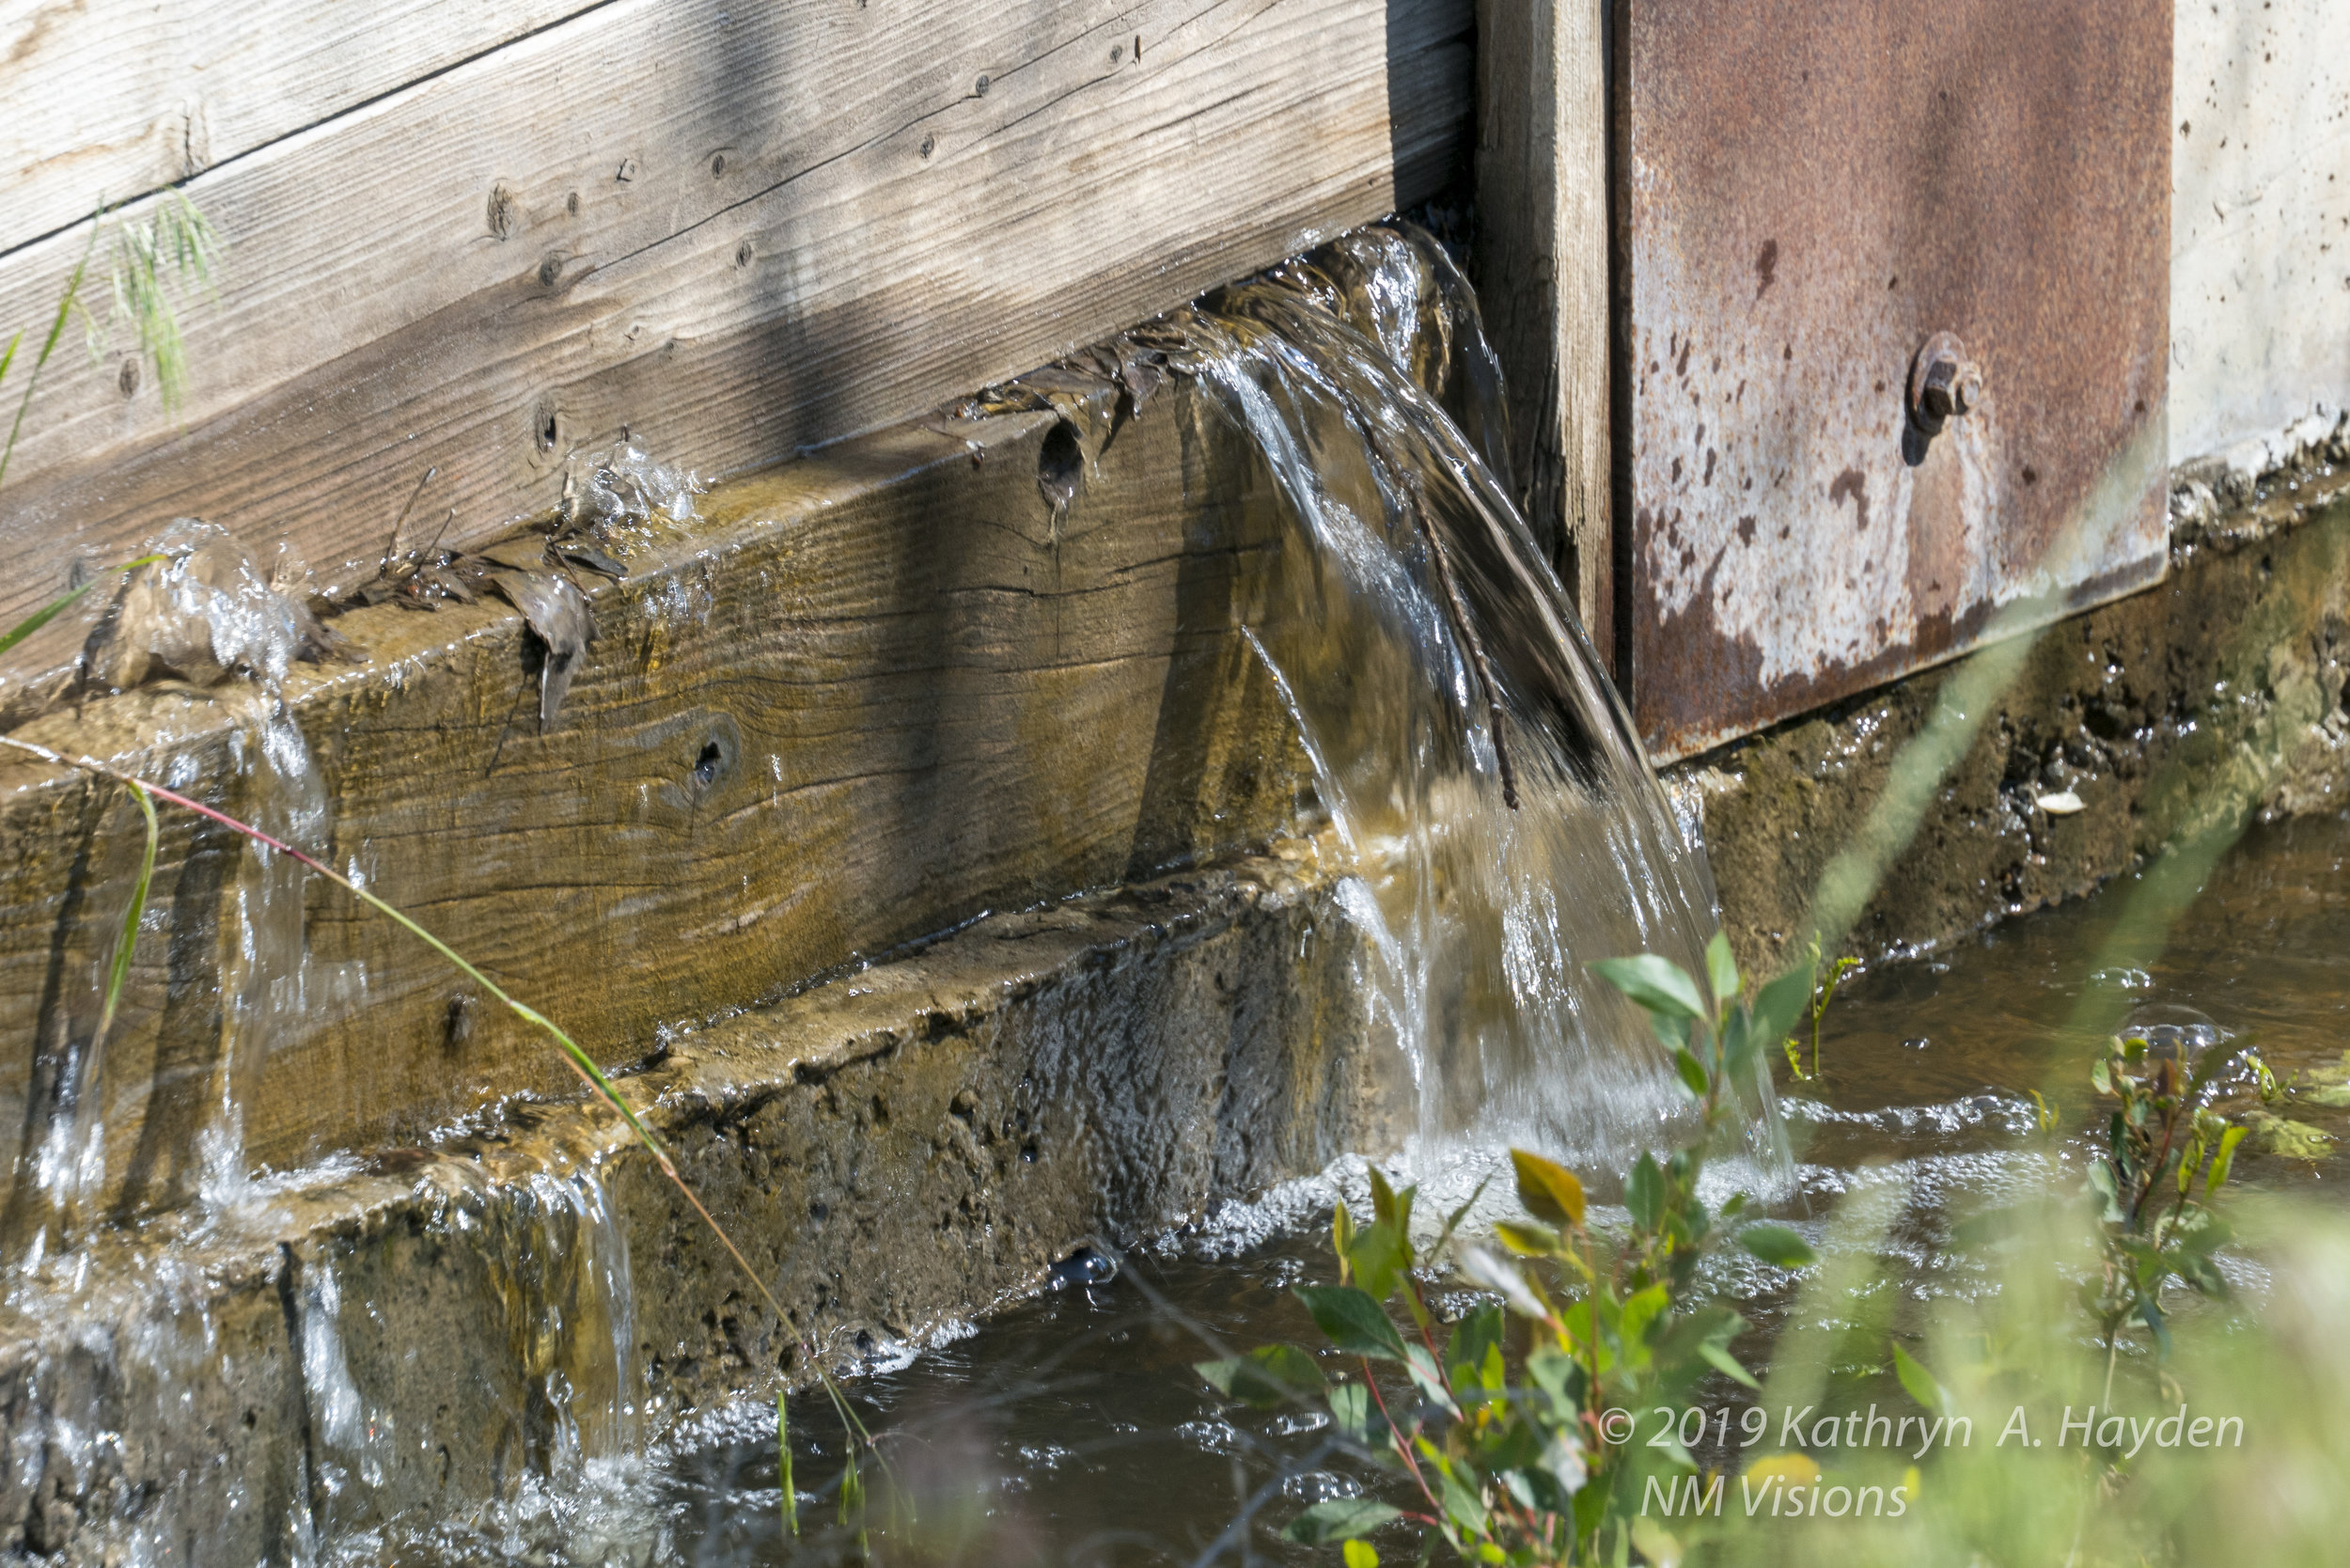 water pouring through the acequia, again an uncommon view for this piece of land.